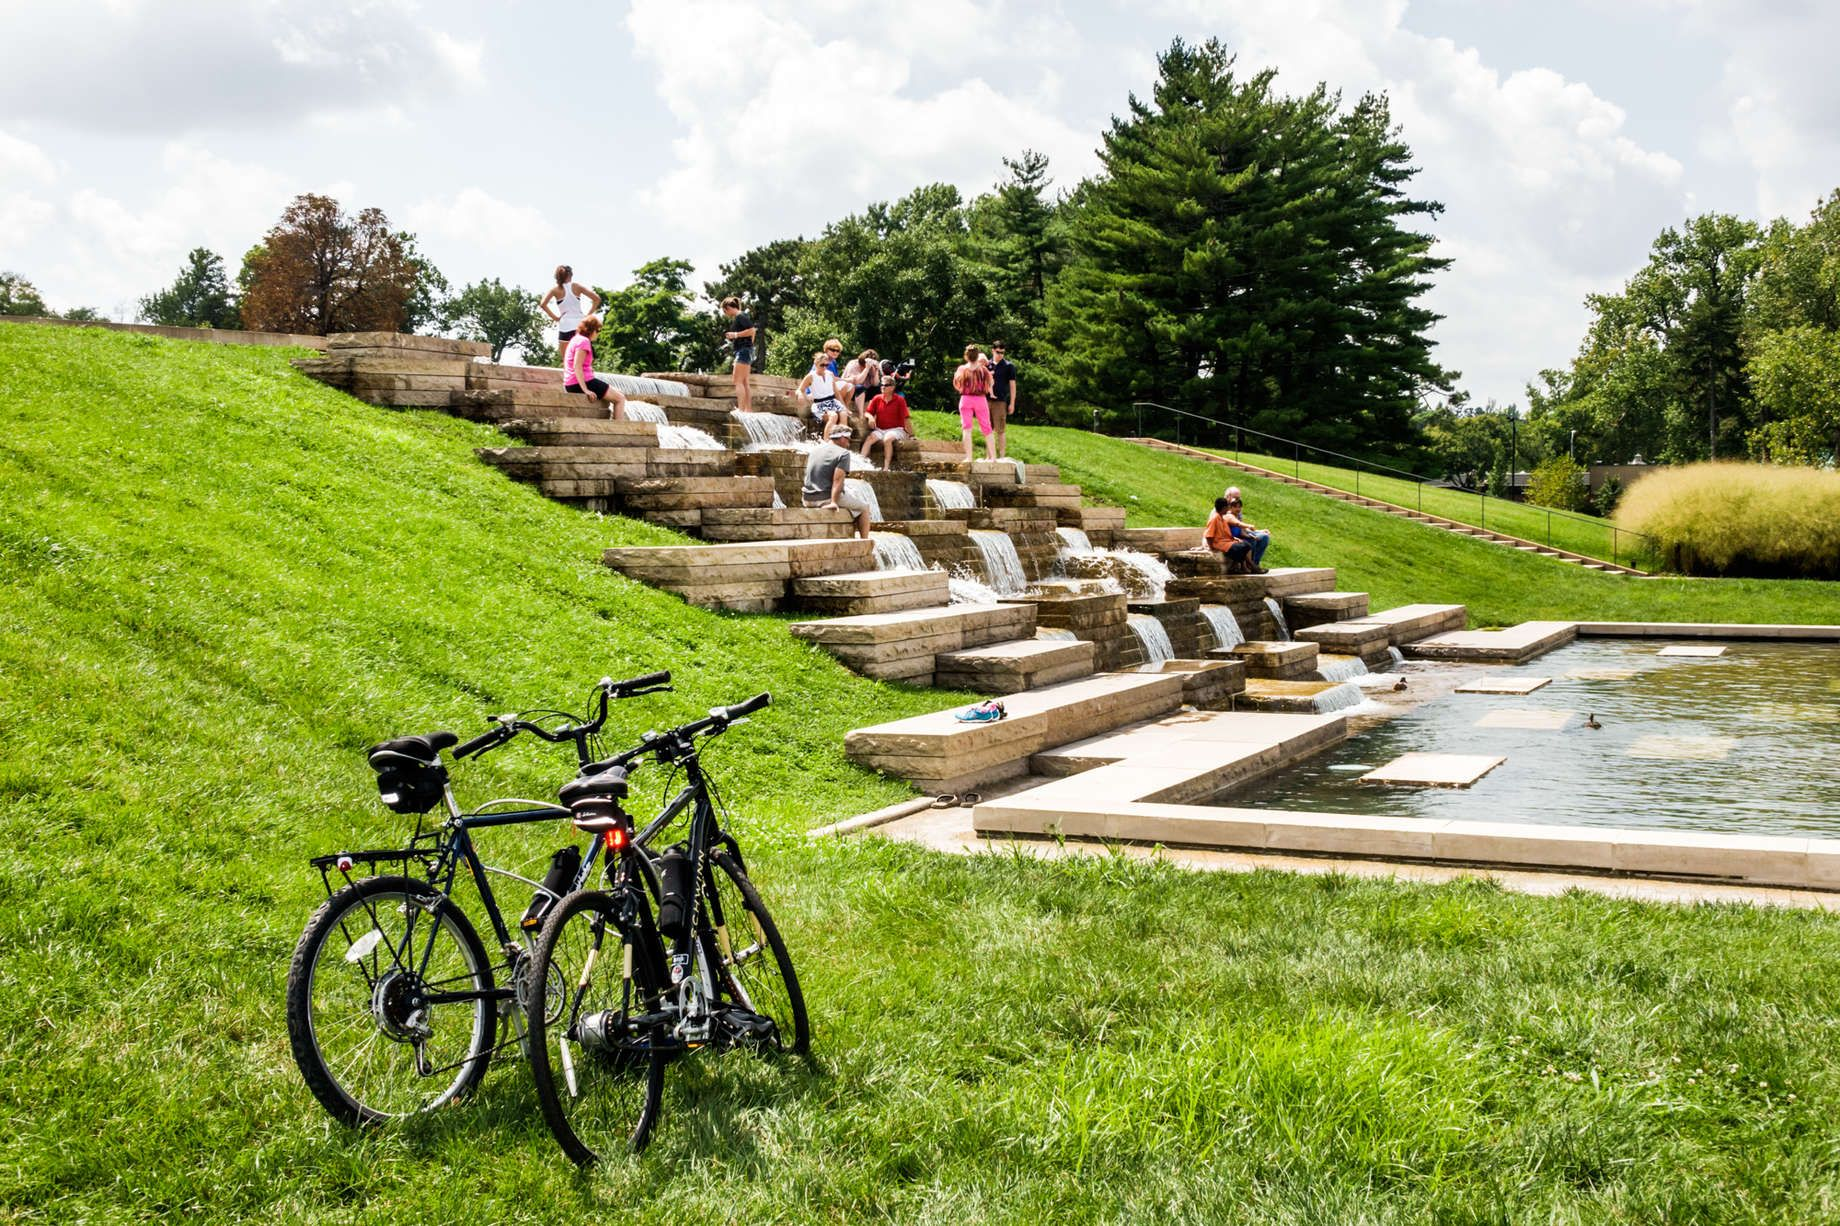 Best City Parks In America Forest Park St Louis Top Parks To Visit Near Us Cities Thrillist City Parks Landscape Park Landscape Park City